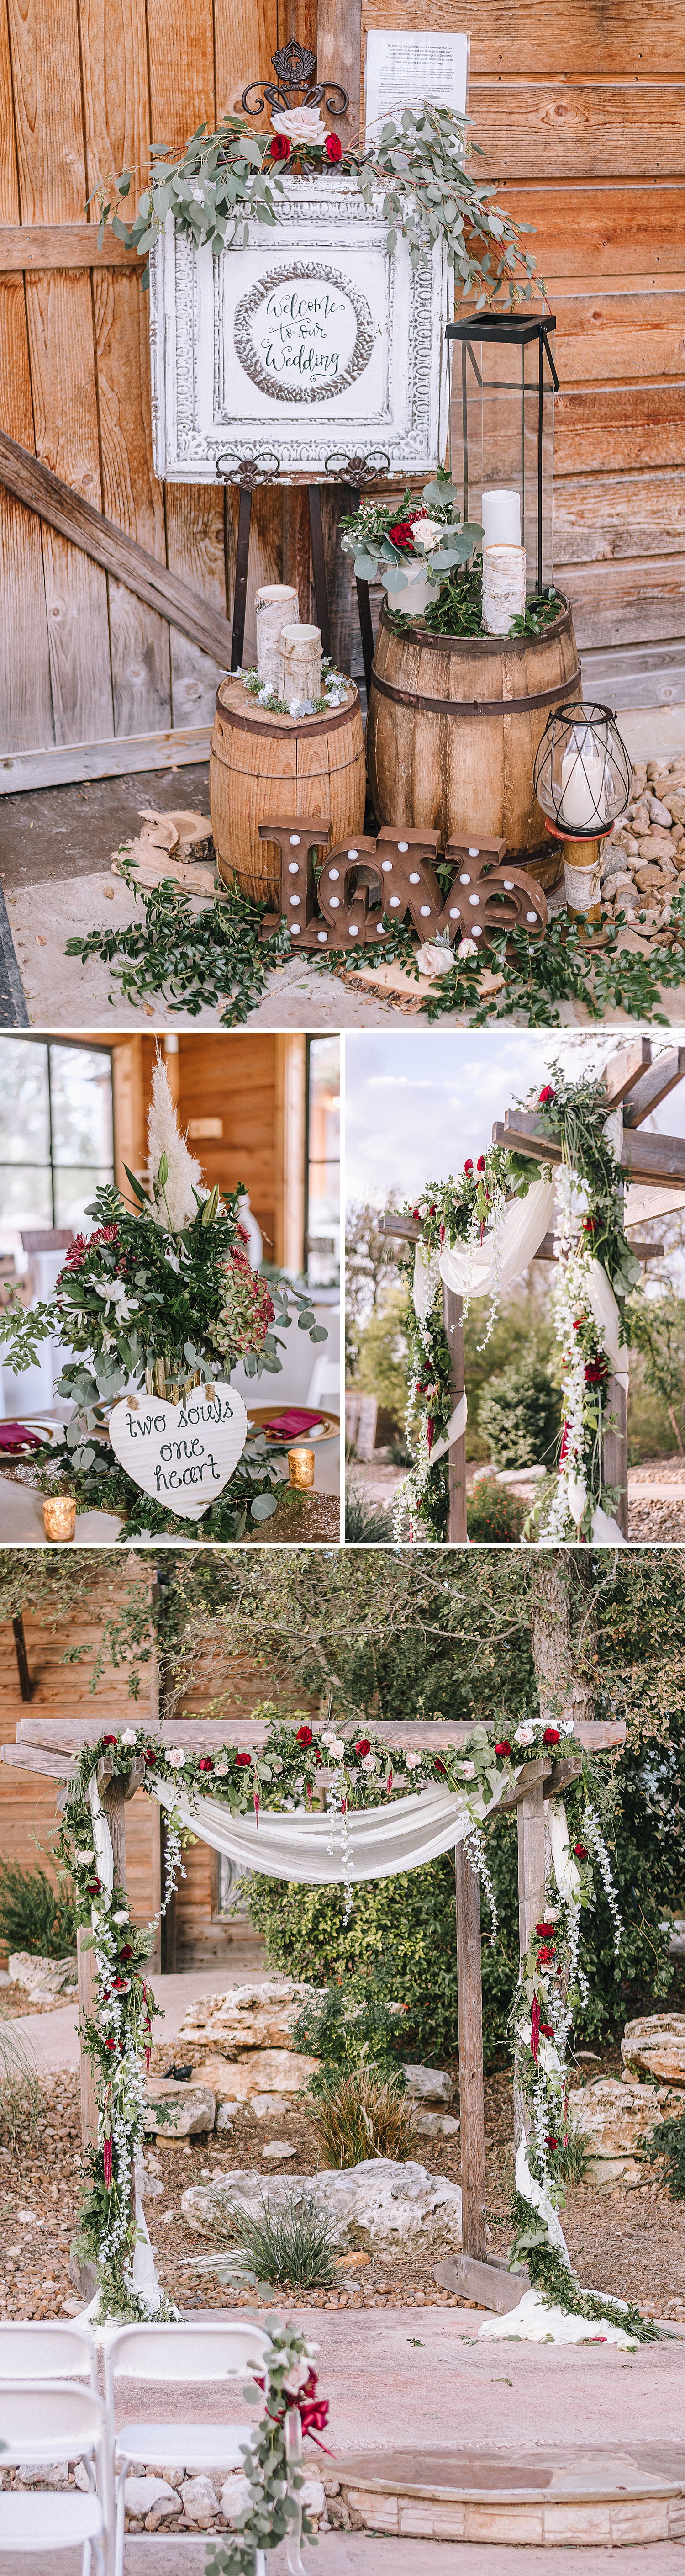 Geronimo-Oaks-Wedding-Venue-Seguin-Texas-Elegant-Navy-Burgundy-Wedding-Carly-Barton-Photography_0009.jpg